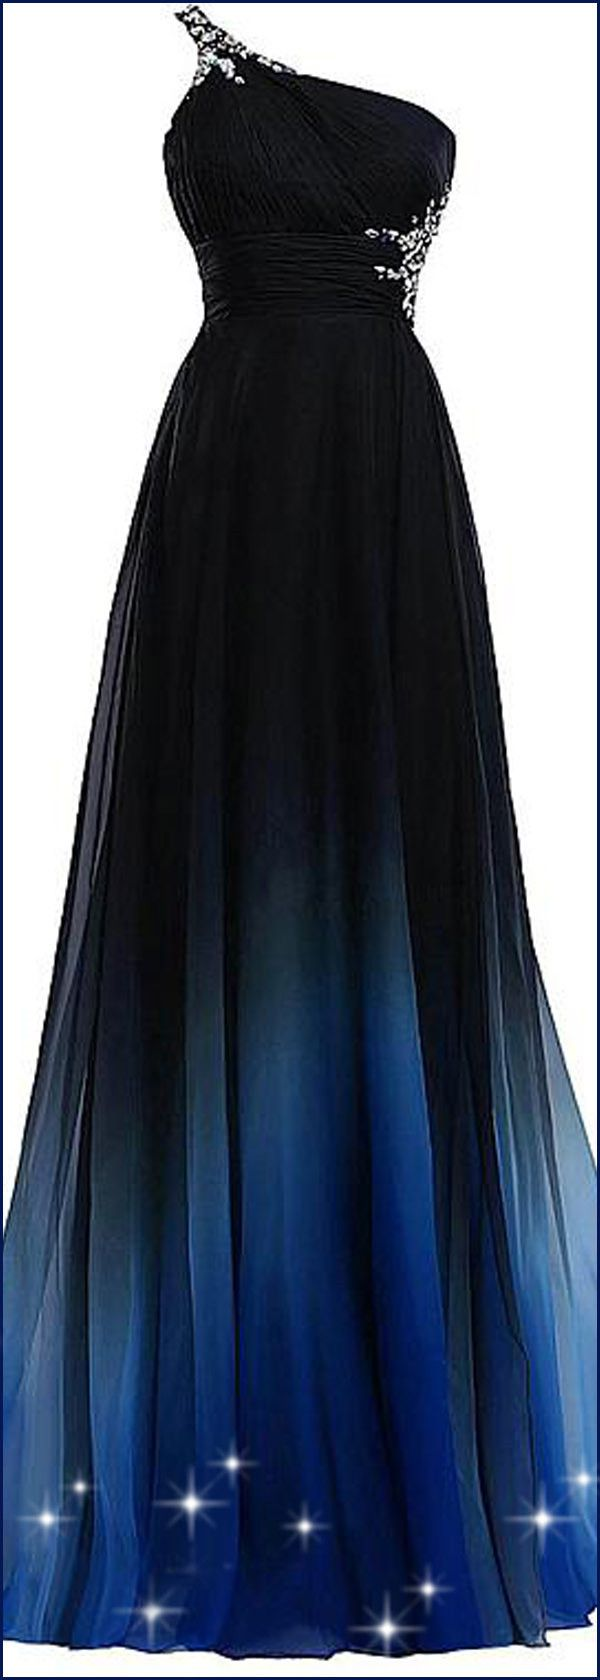 In Stock Chic Gradient Chiffon One-shoulder Neckline A-Line Prom Dresses With Beads